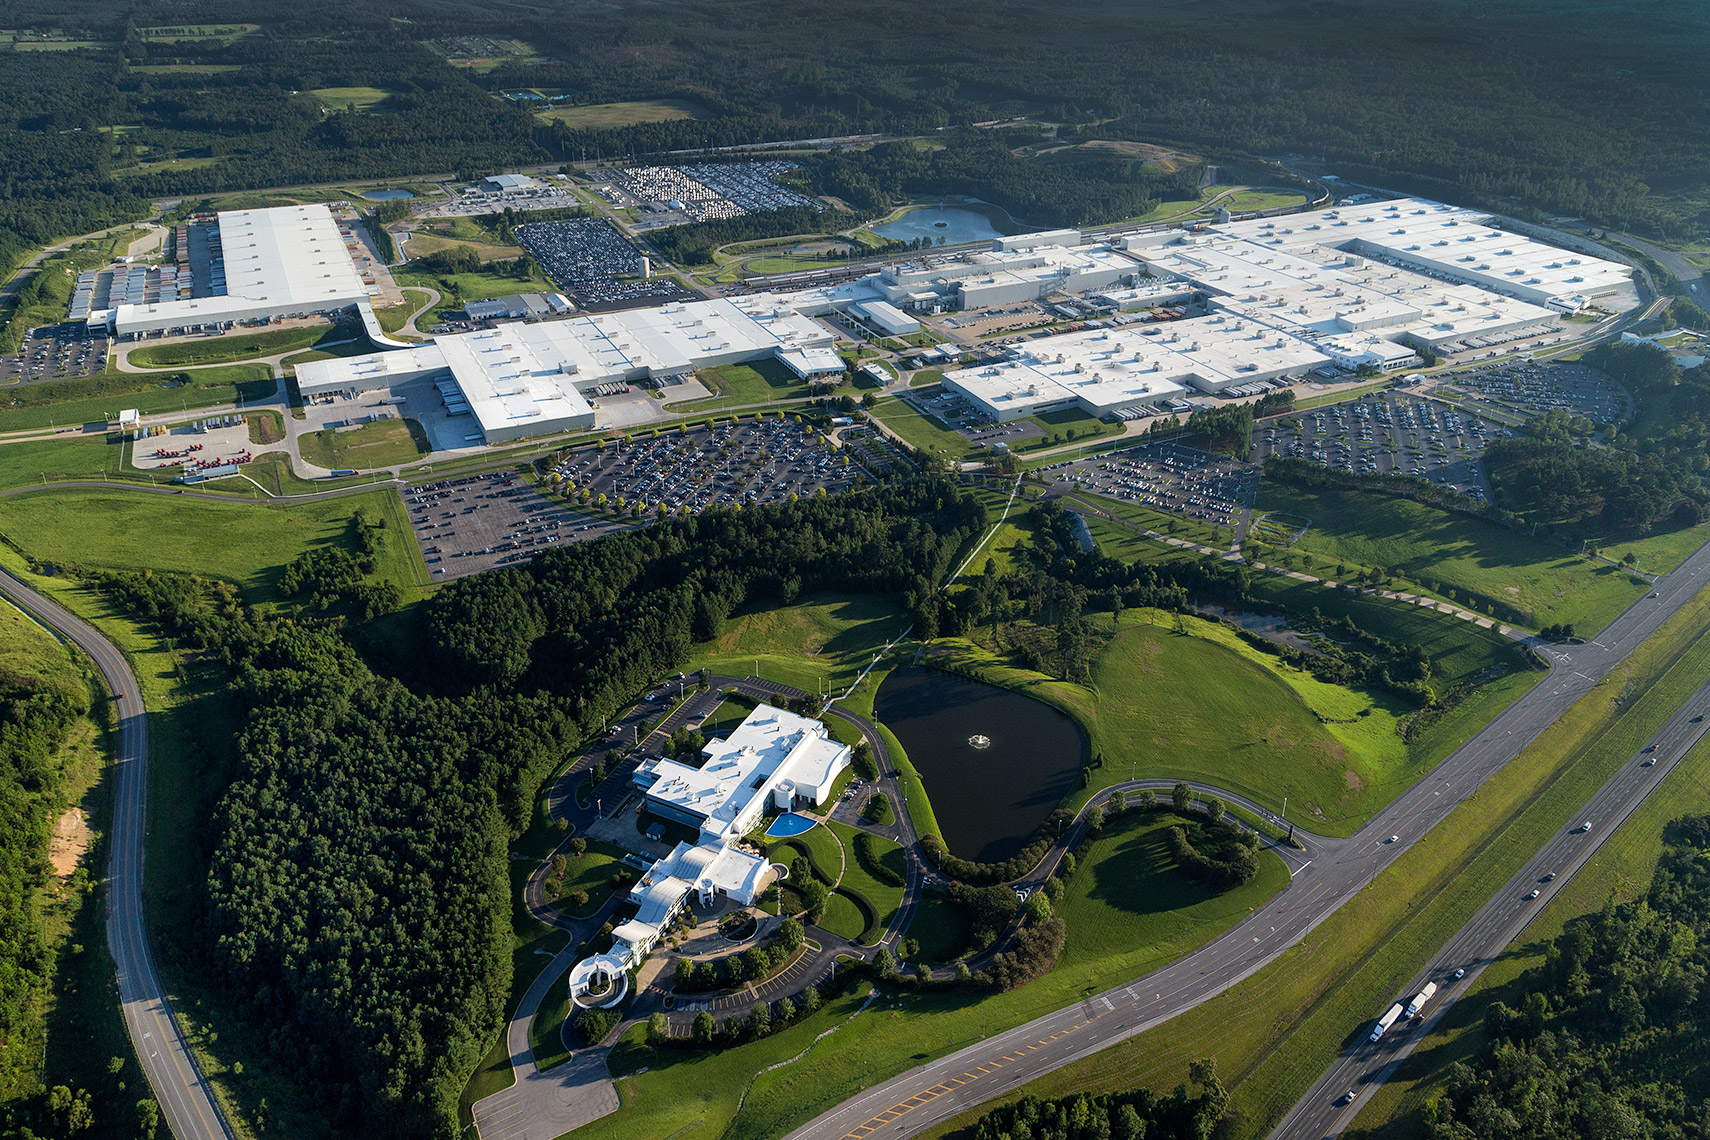 Aerial view of Mercedes assembly plant